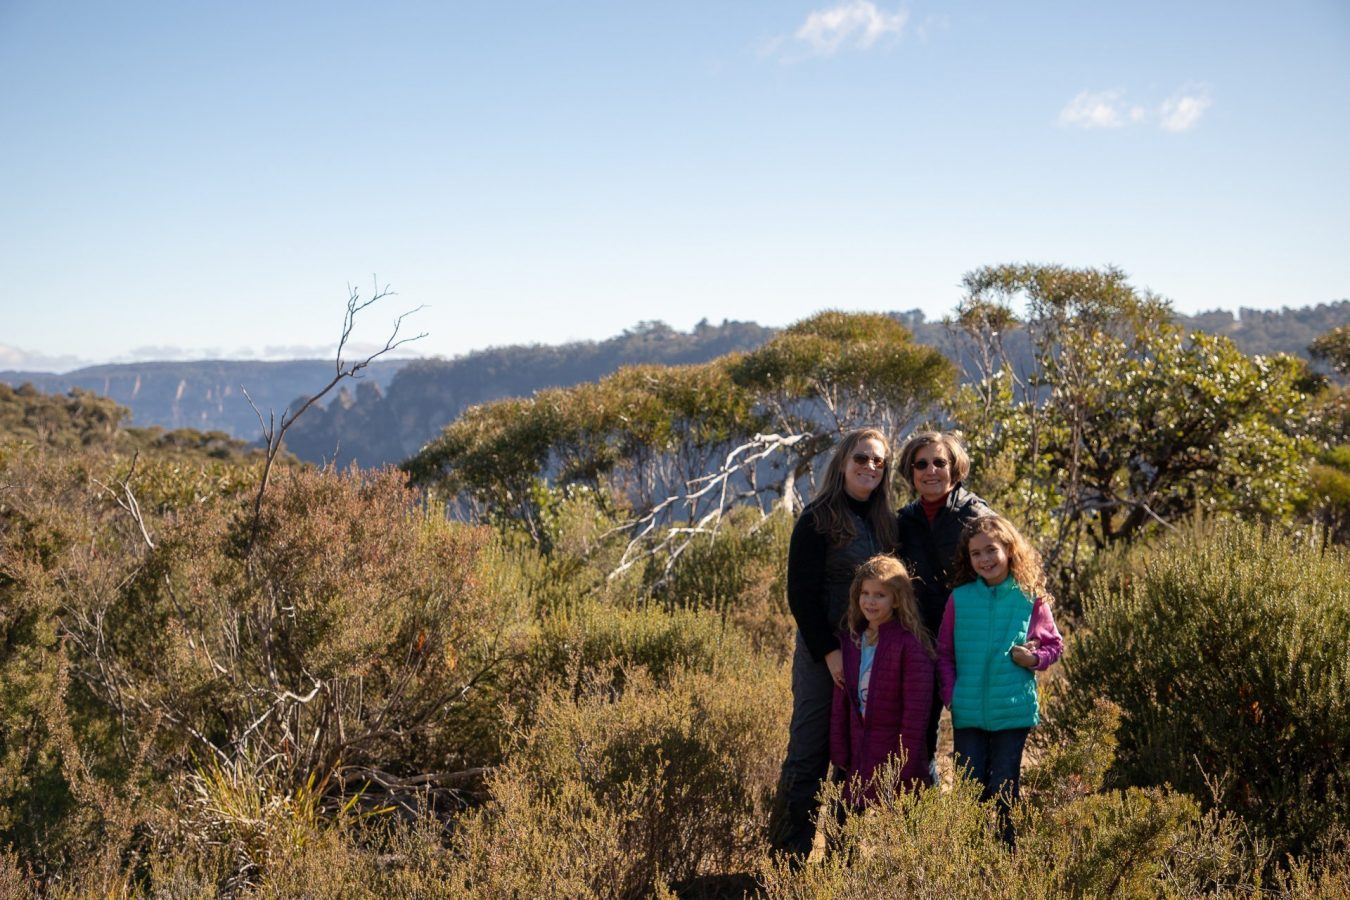 Out for a hike in the Blue Mountains